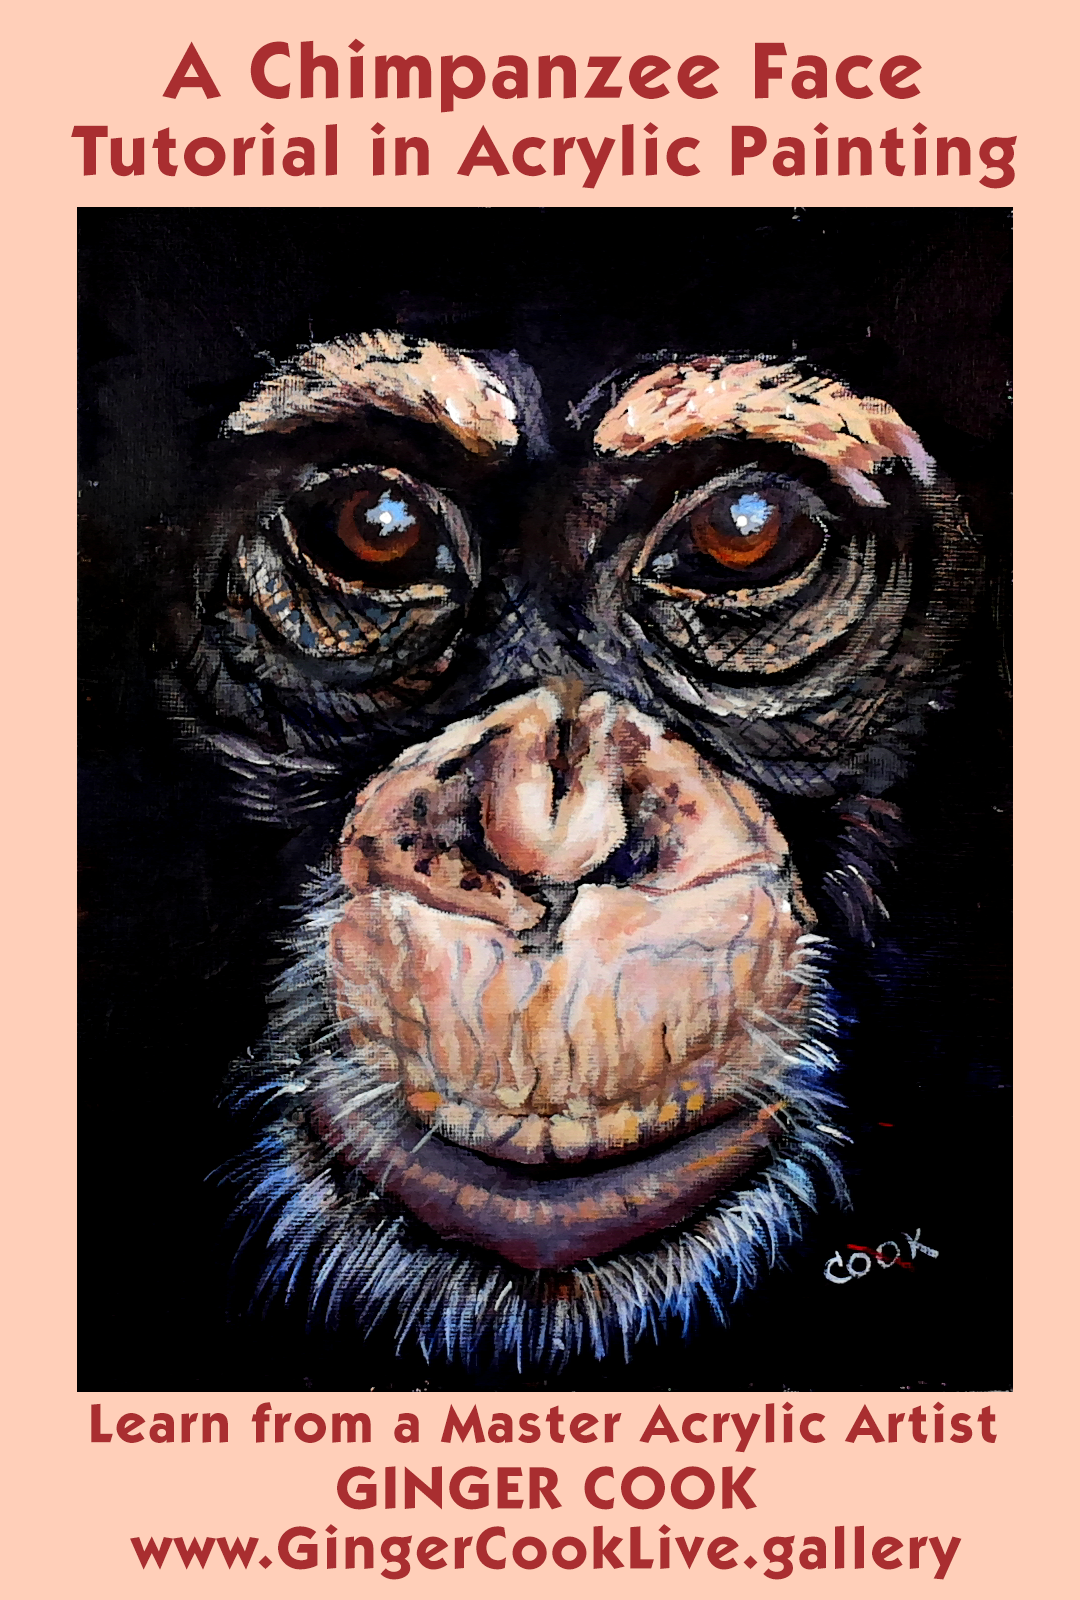 Chimp Face Poster | DOWNLOADABLE ACRYLIC LESSONS to Buy and